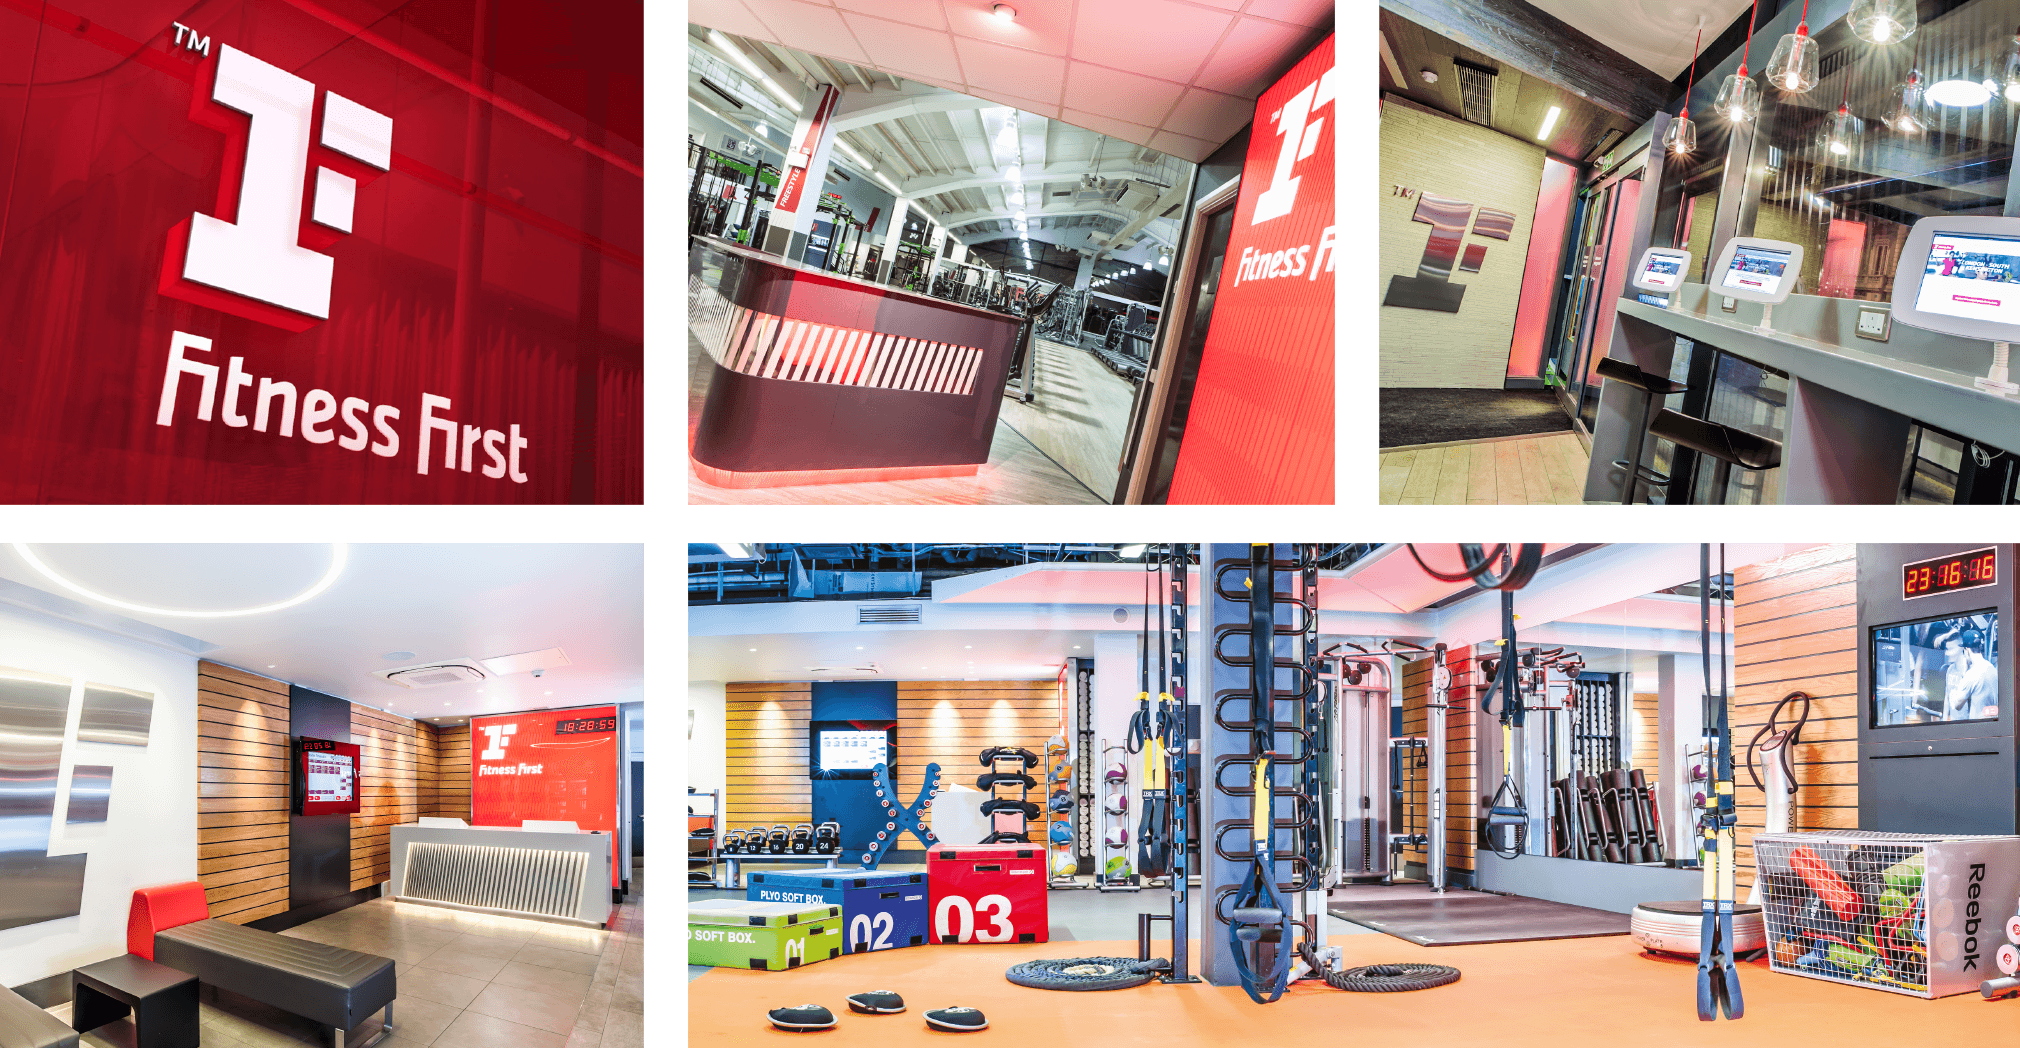 fitnessfirst-image-4.png